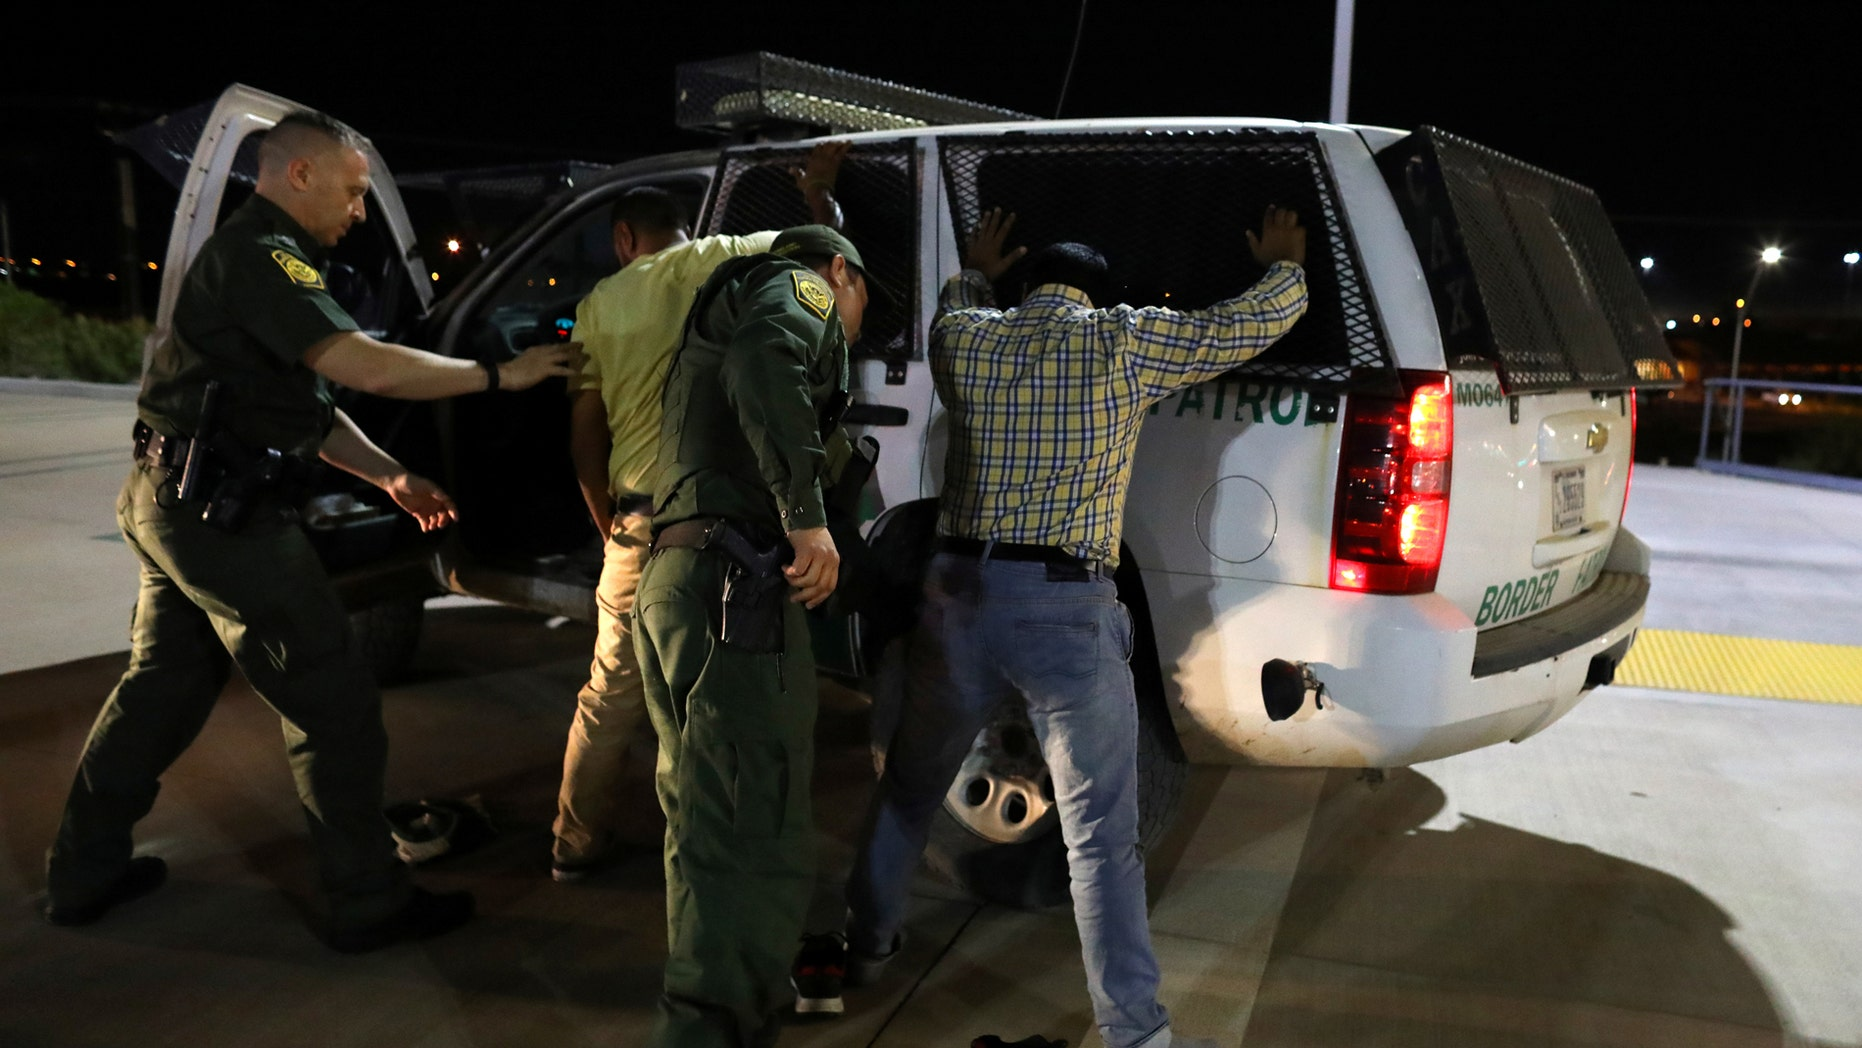 U.S. border patrol agents detain two men from India after they climbed over the border wall from Mexico in Calexico, California, U.S. February 8, 2017.